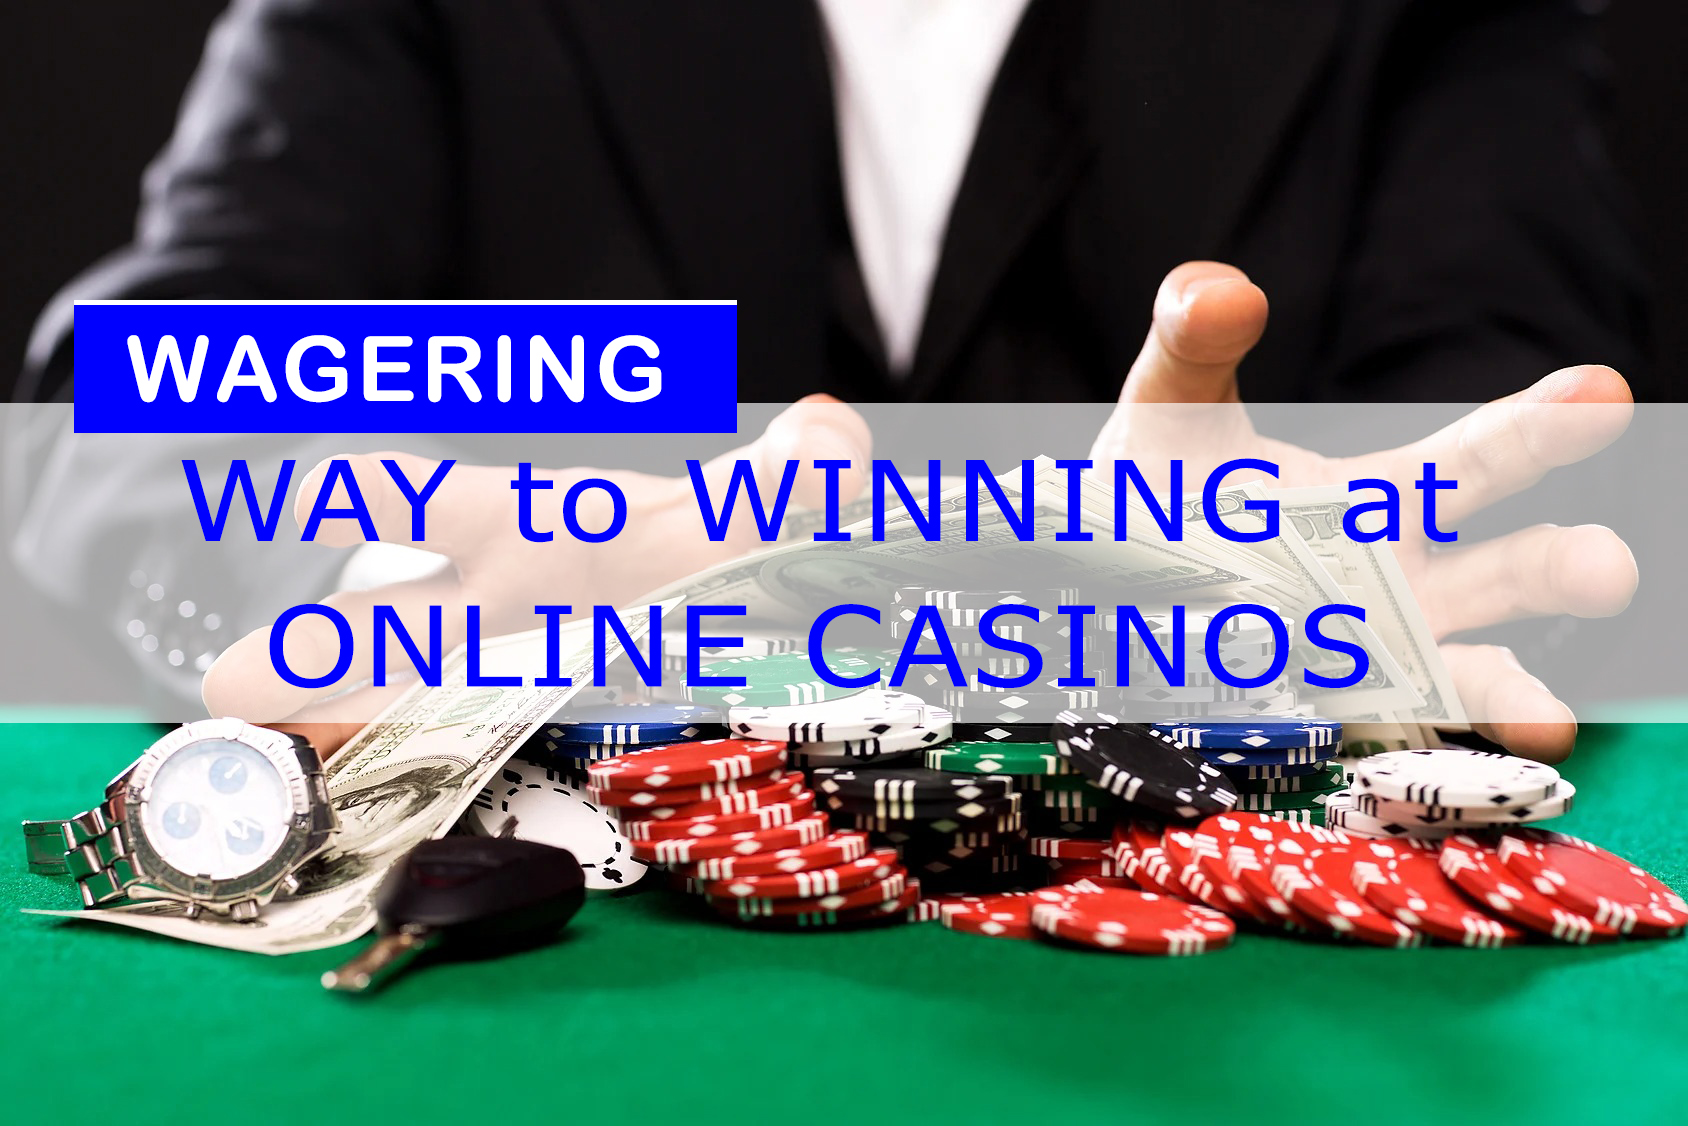 wagering at online casinos